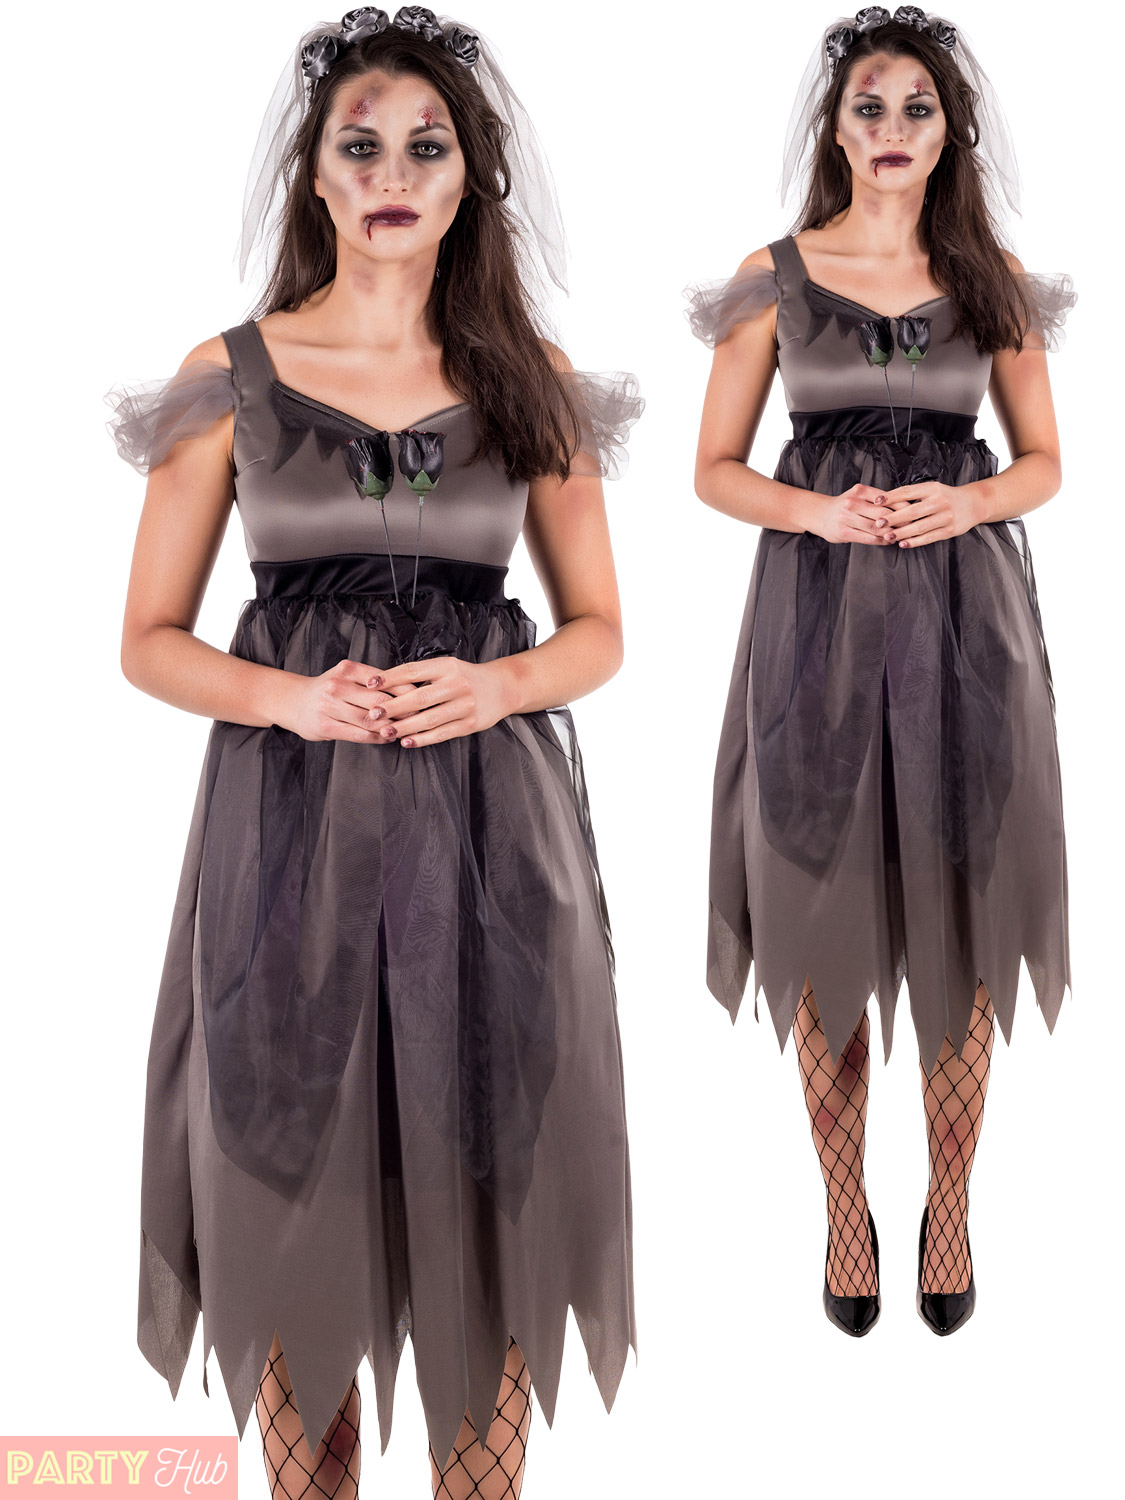 78458f814d2 Details about Ladies Deathly Bride Costume Adults Halloween Fancy Dress  Womens Ghost Outfit